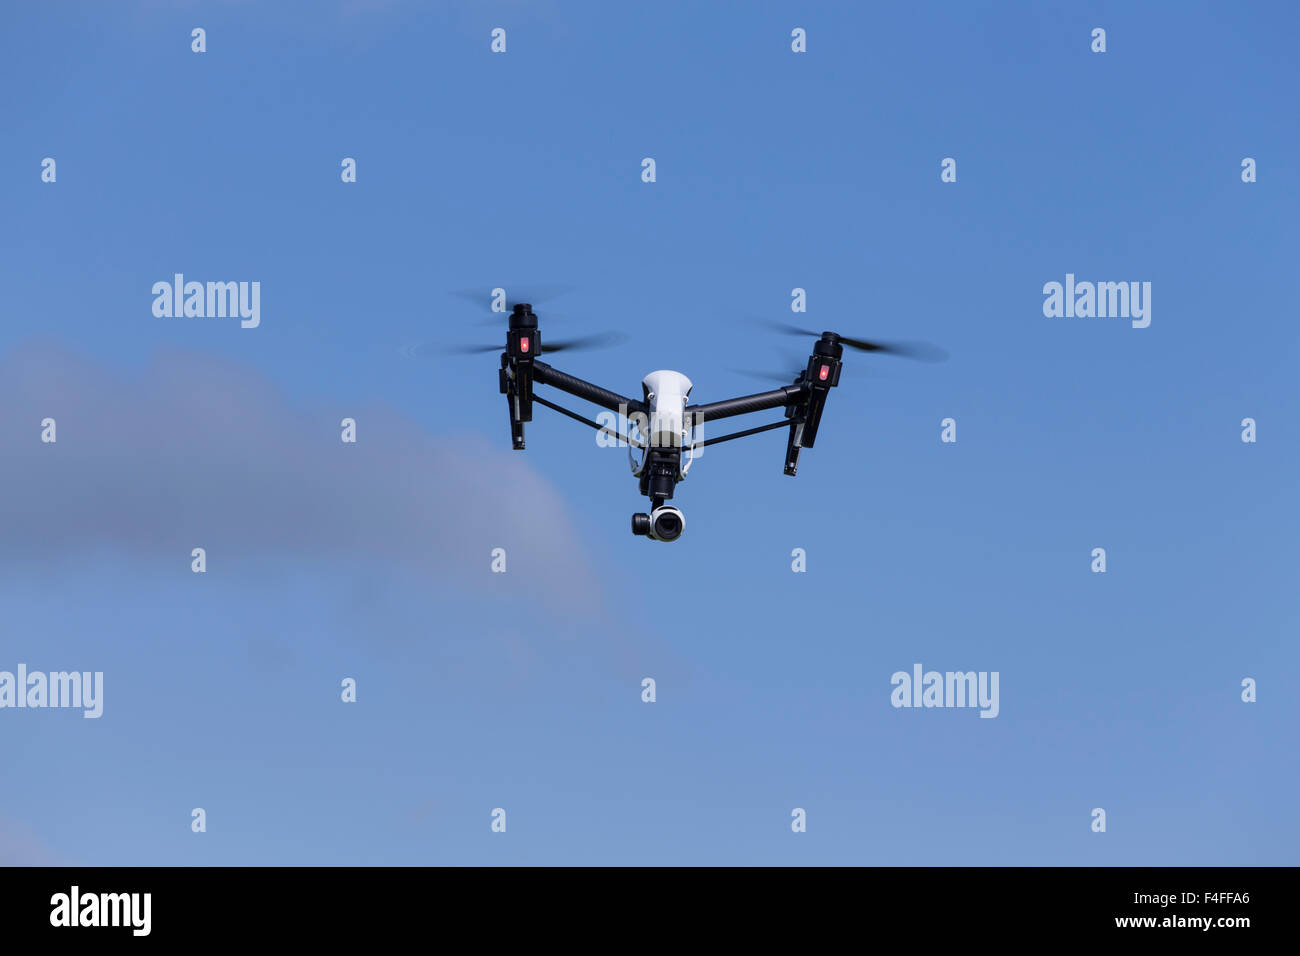 Aerial photography and videos can be taken with a .Quadcopter Drone such as a DJI Inspire - Stock Image